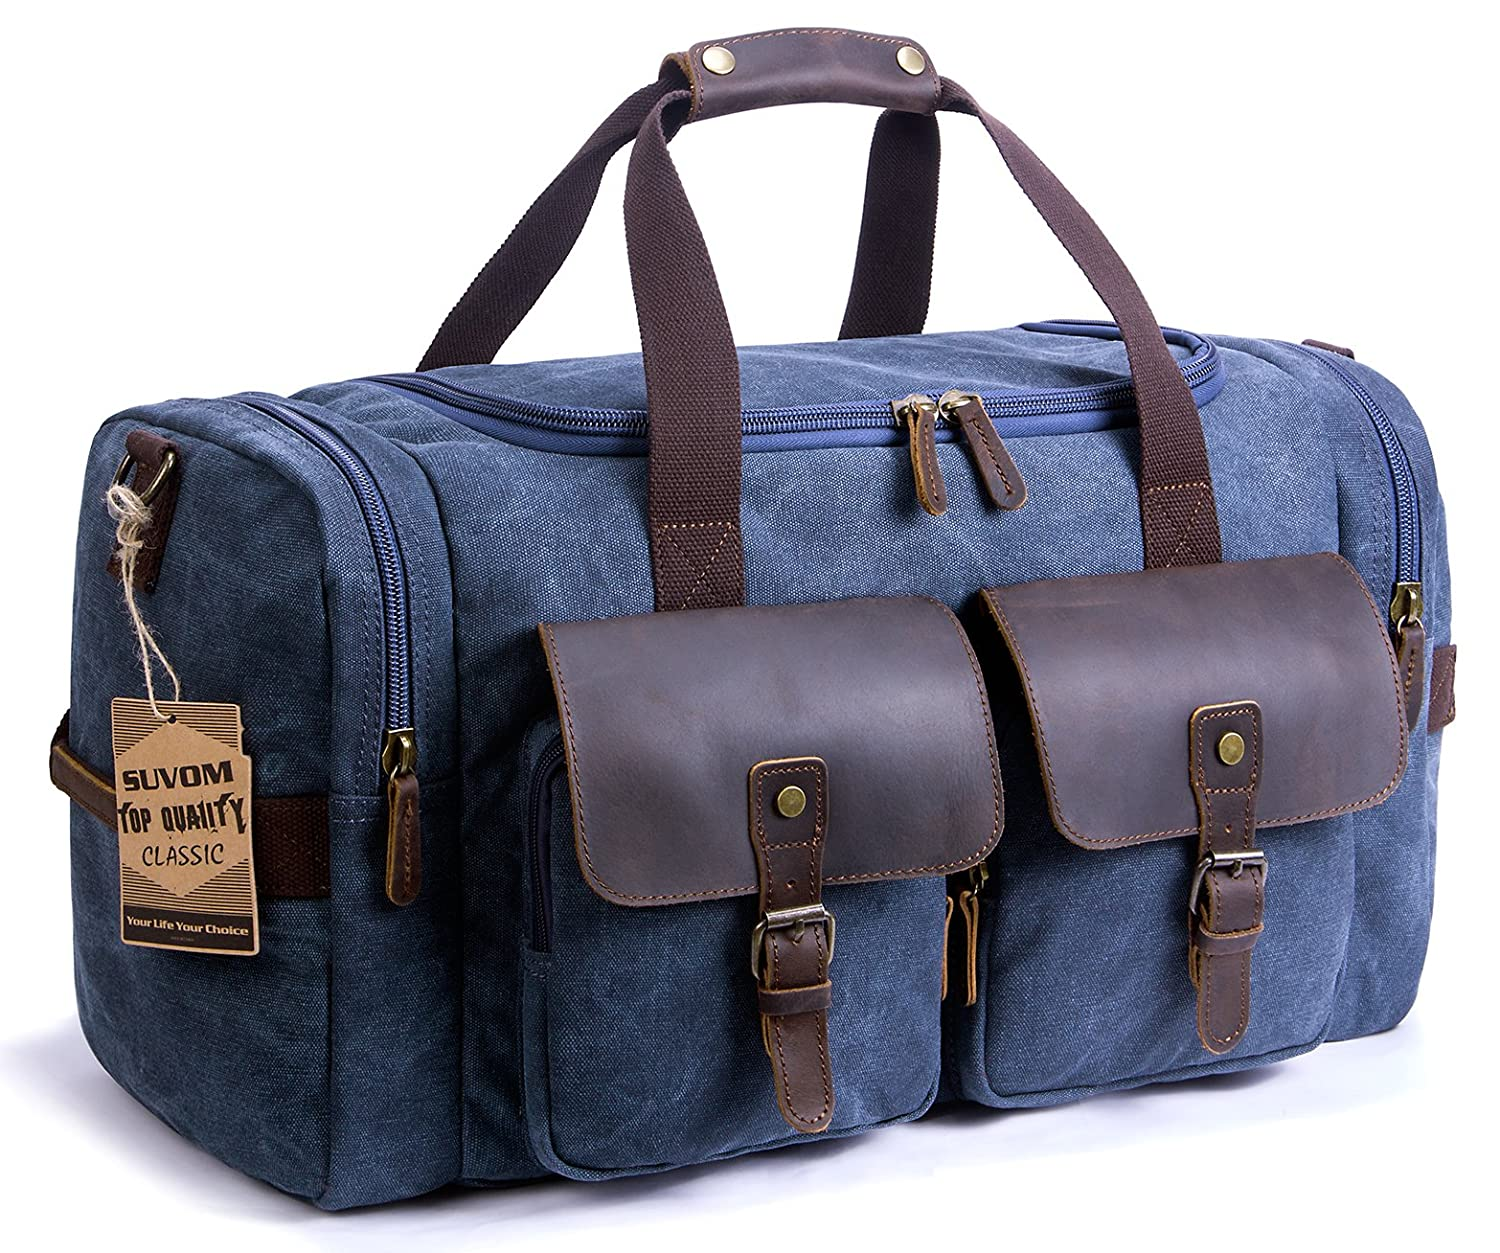 49f333086 Amazon.com | SUVOM Canvas Duffle Bag Leather Weekend Bag Carry On Travel  Bag Luggage Oversized Holdalls for Men and Women(Blue) | Travel Duffels